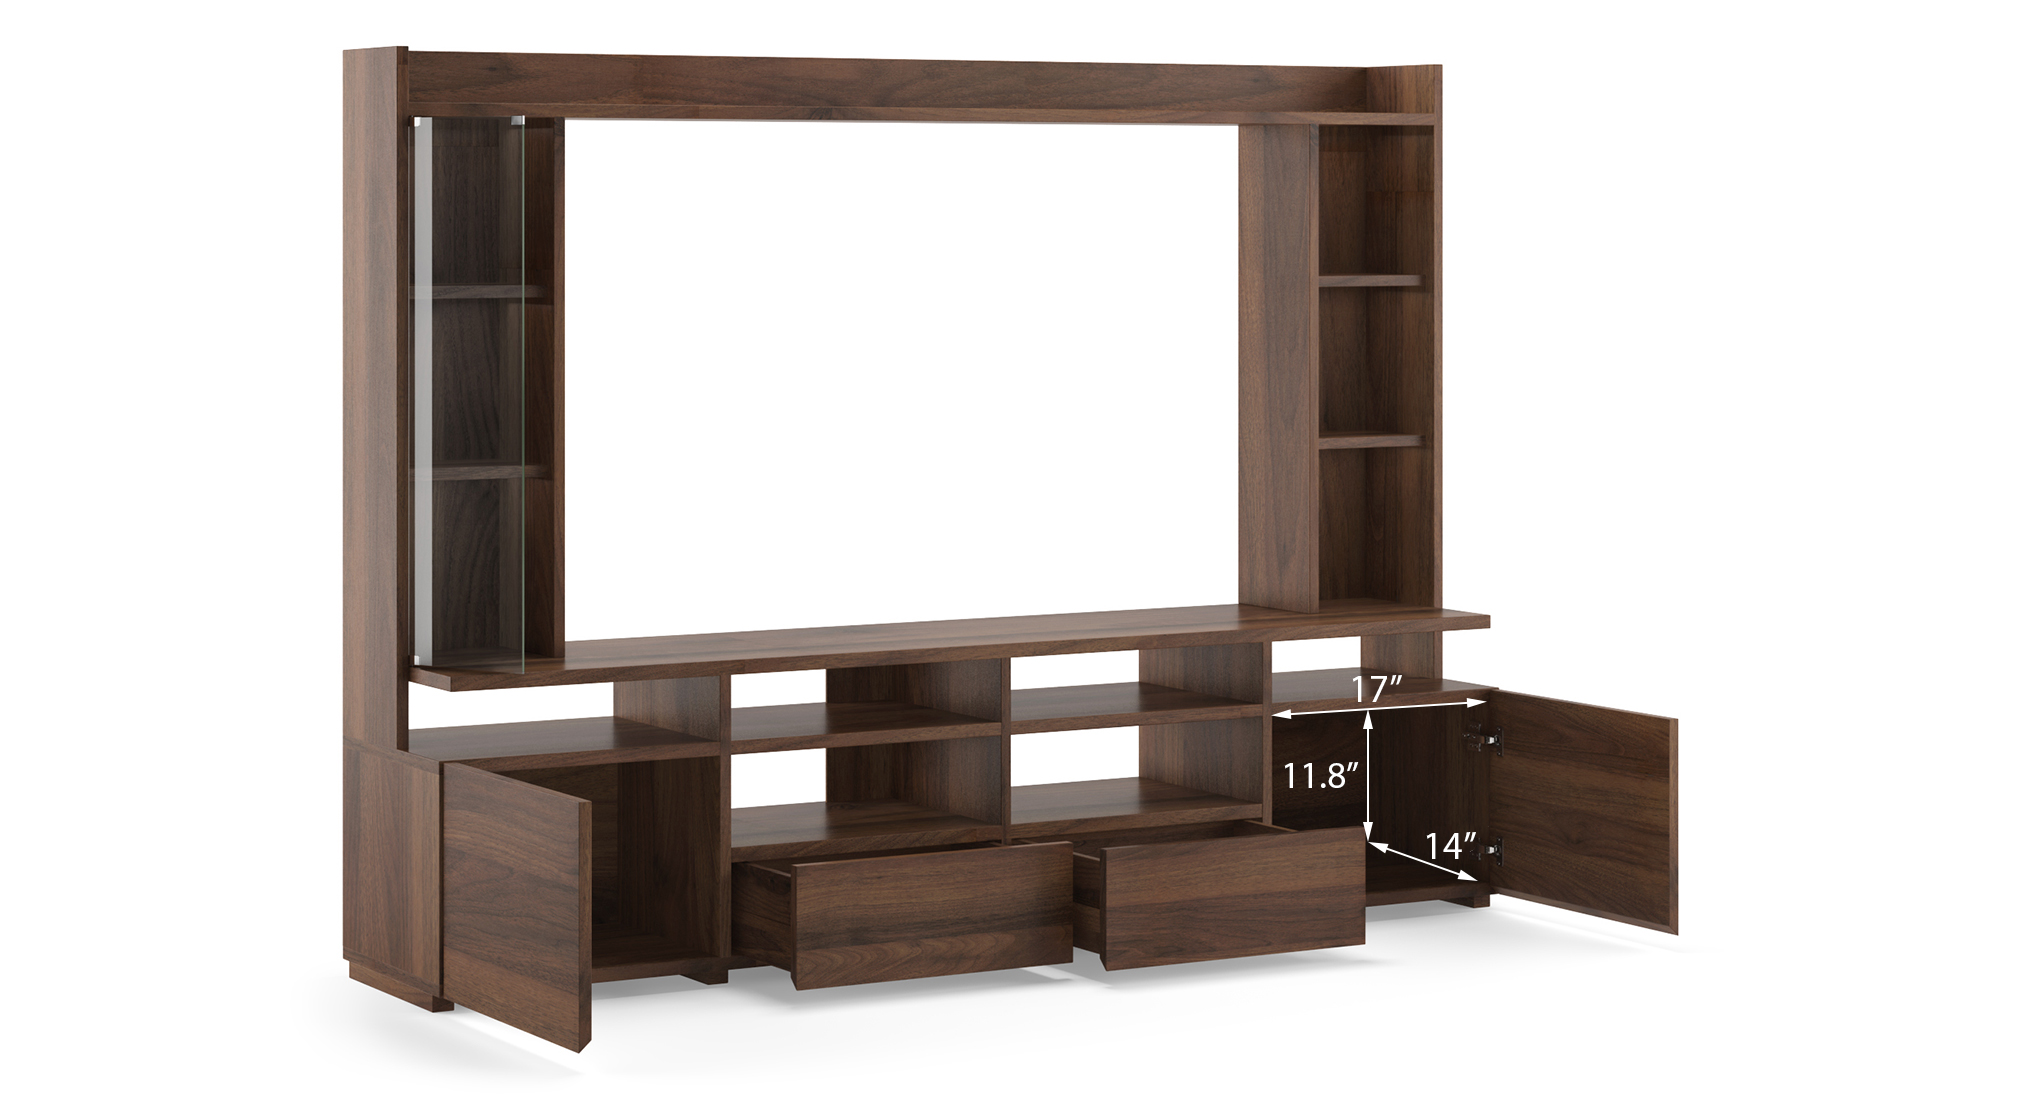 Celestin tv unit 74 inch columbian walnut new